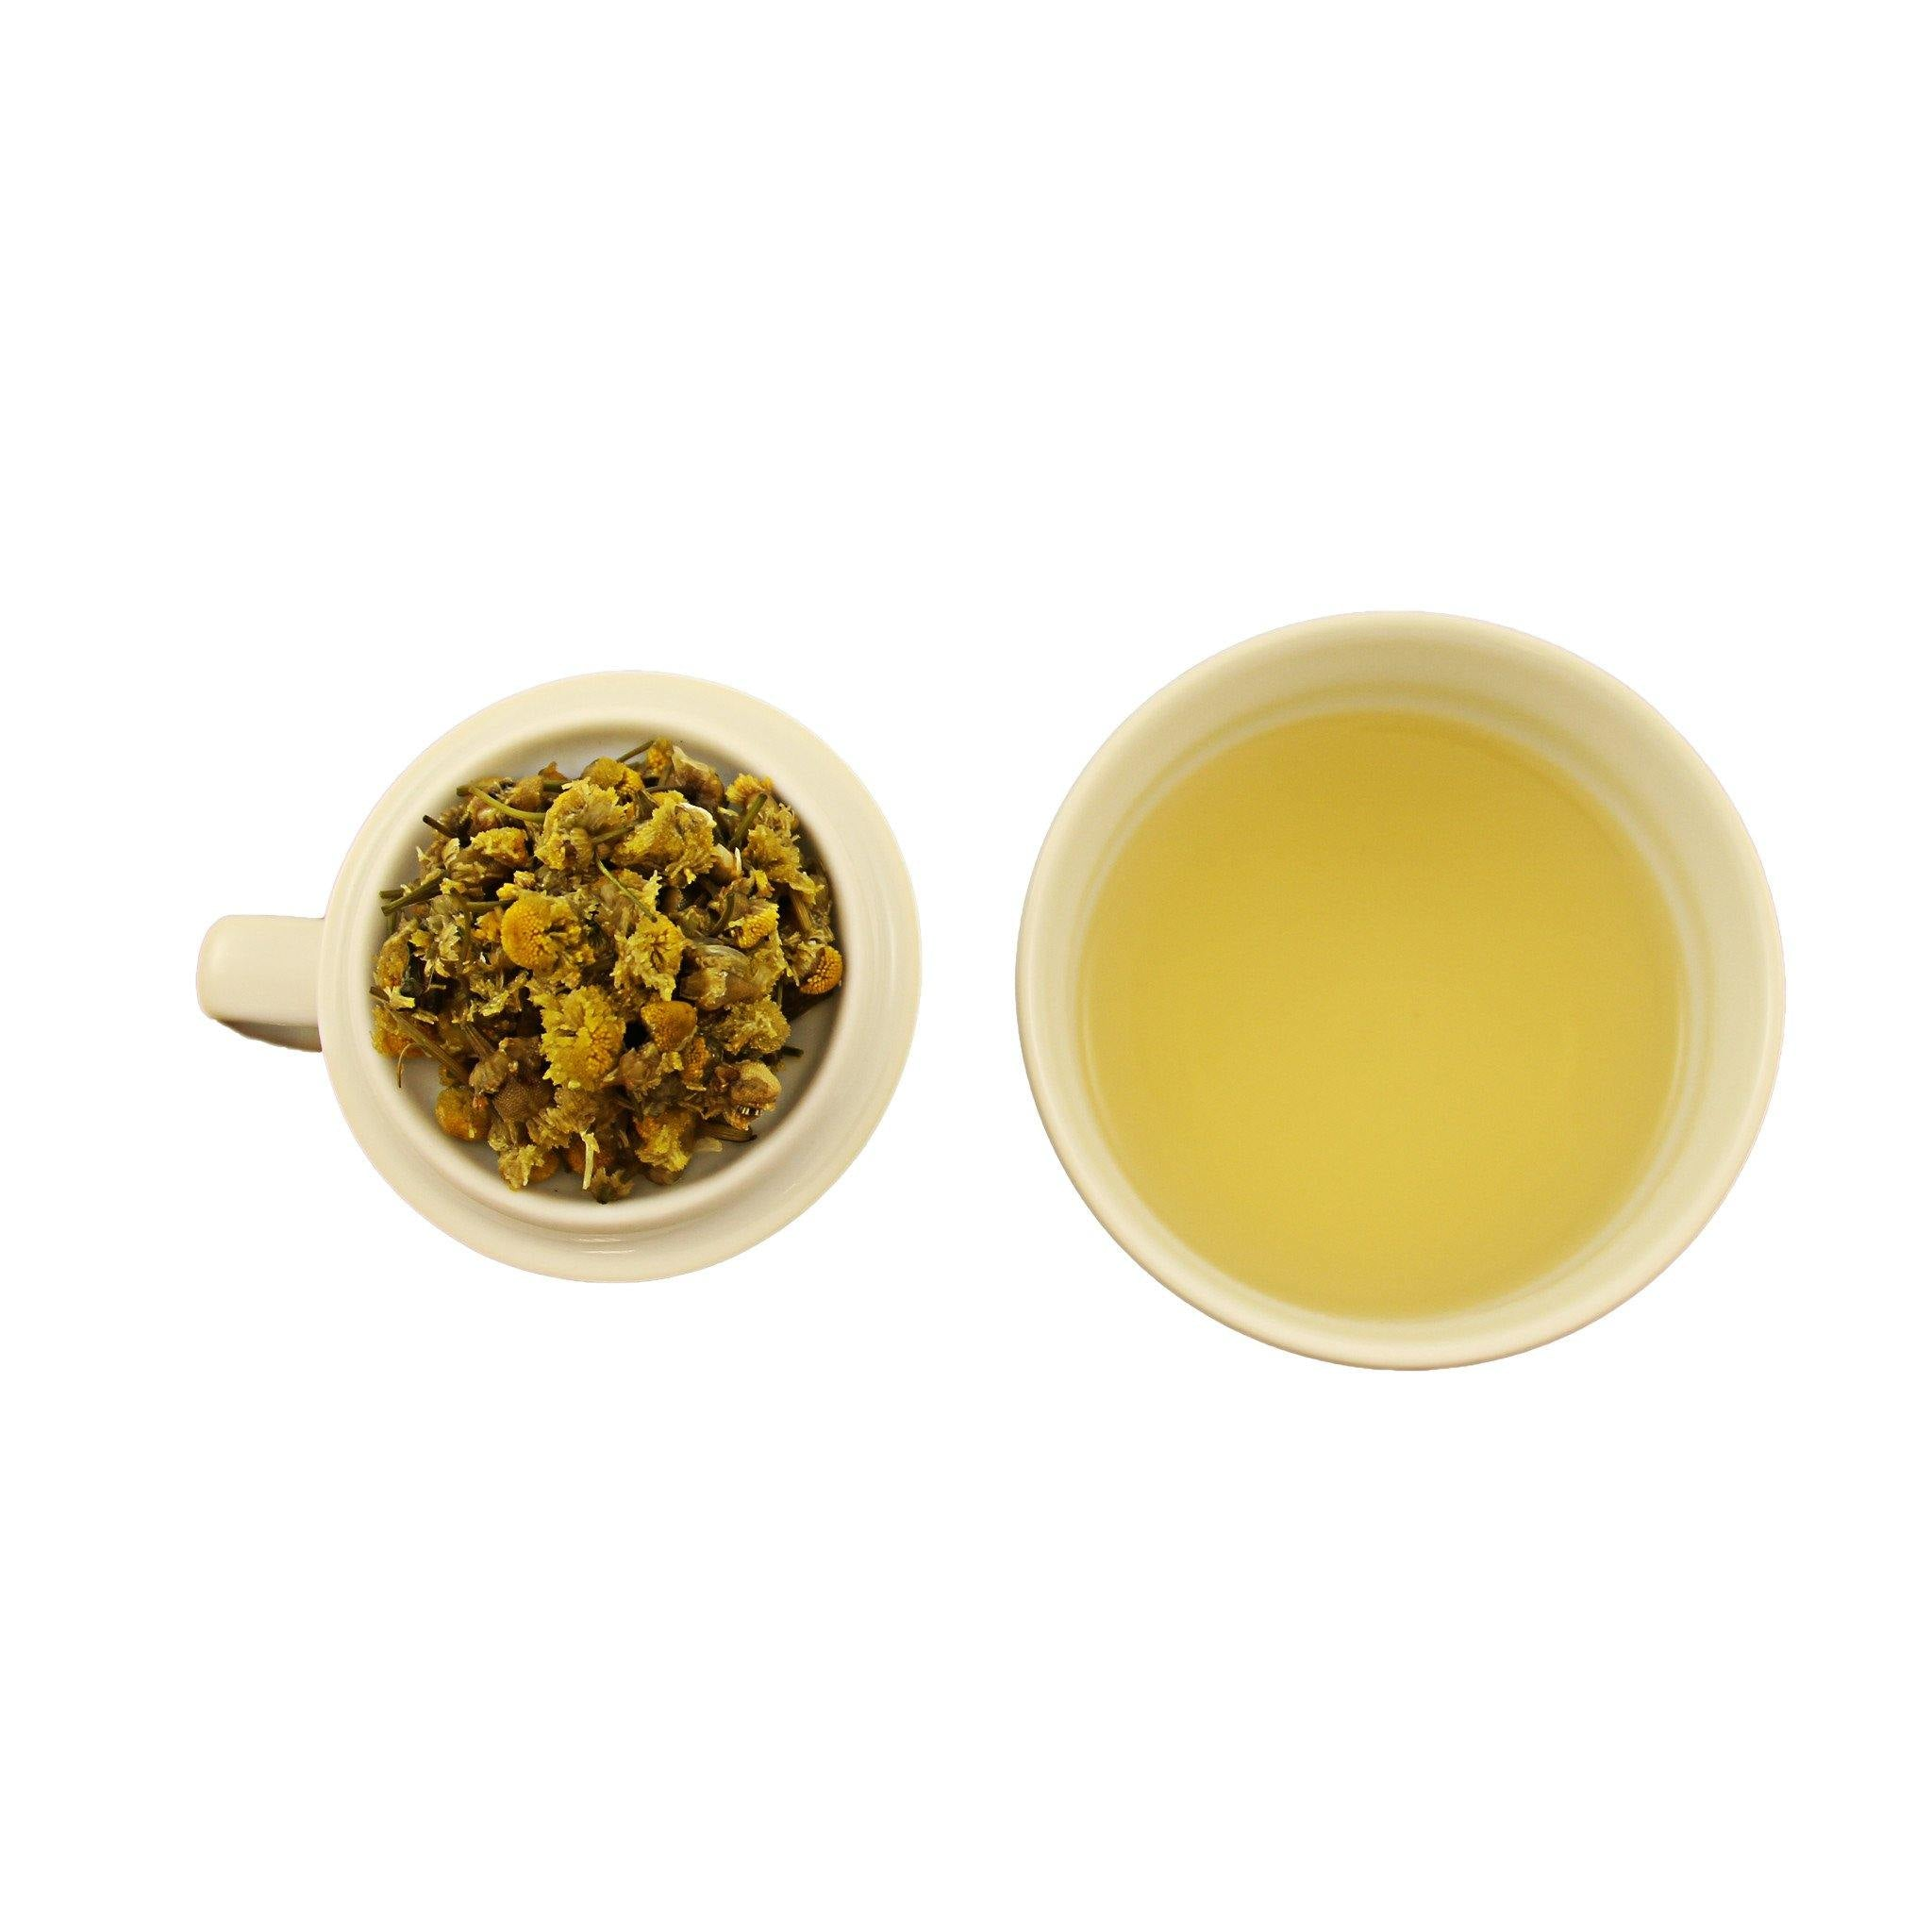 Croatian Chamomile - Herbal